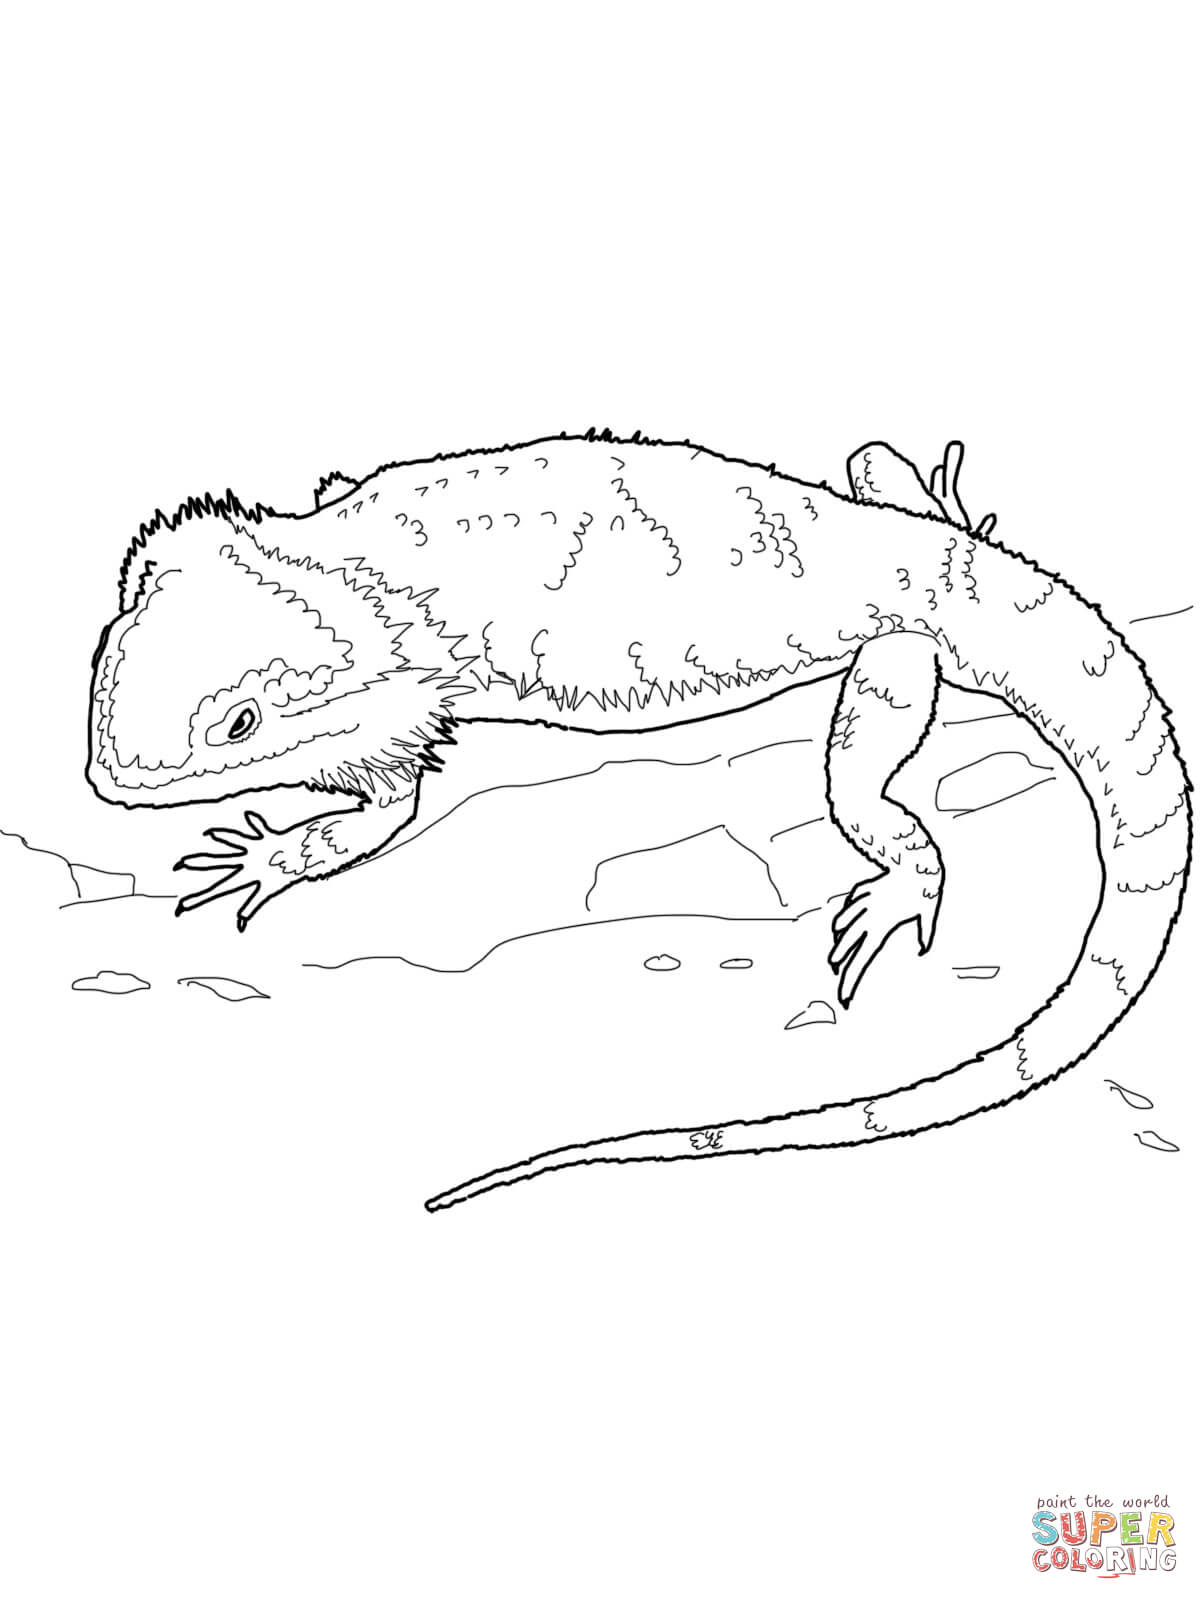 Bearded Dragon clipart #3, Download drawings